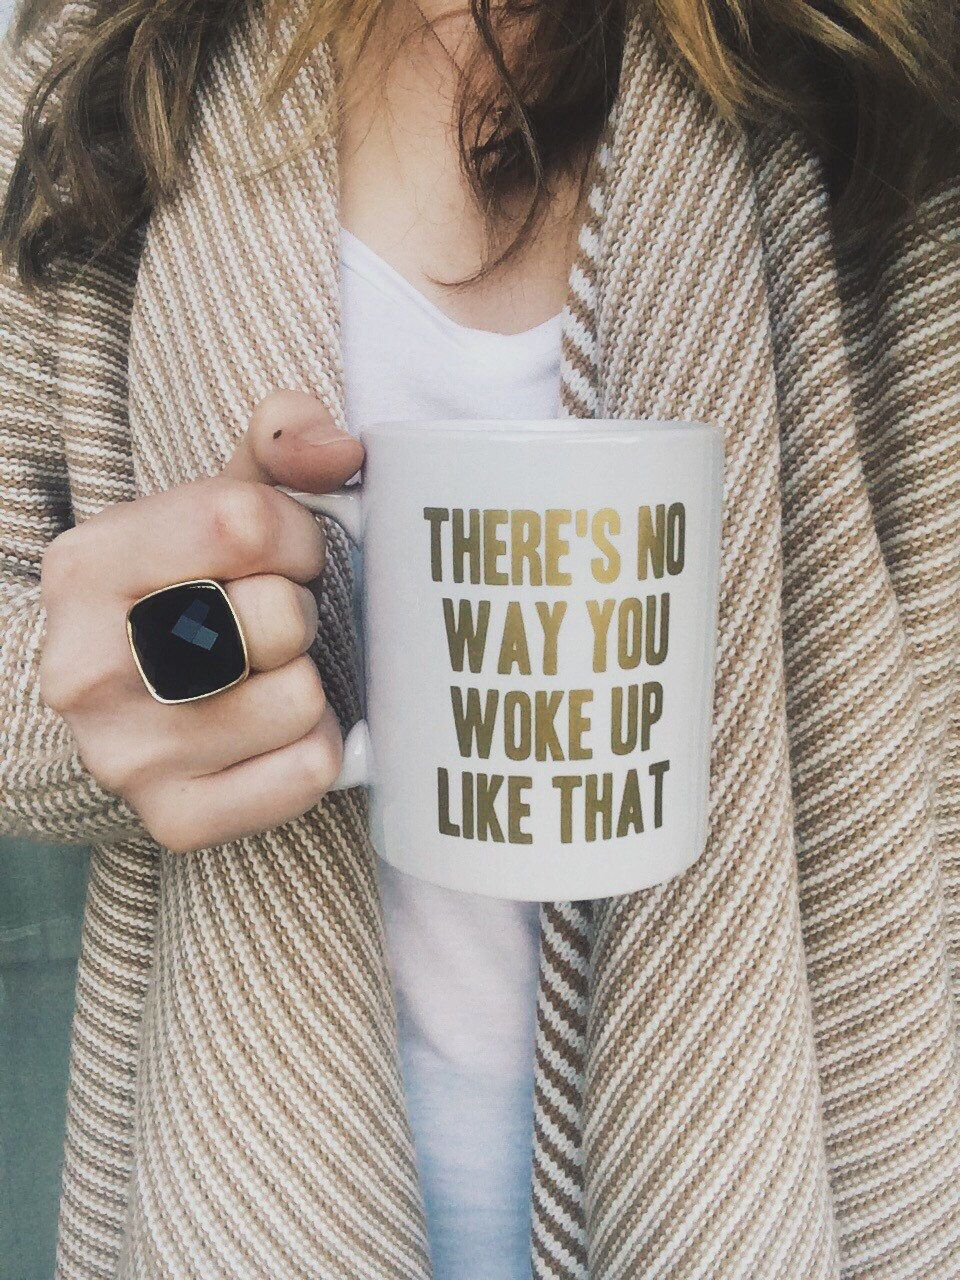 "<a href=""https://www.etsy.com/listing/225260203/i-woke-up-like-this-funny-coffee-mug#_a5y_p=3737341"">I Woke Up Like This Funn"